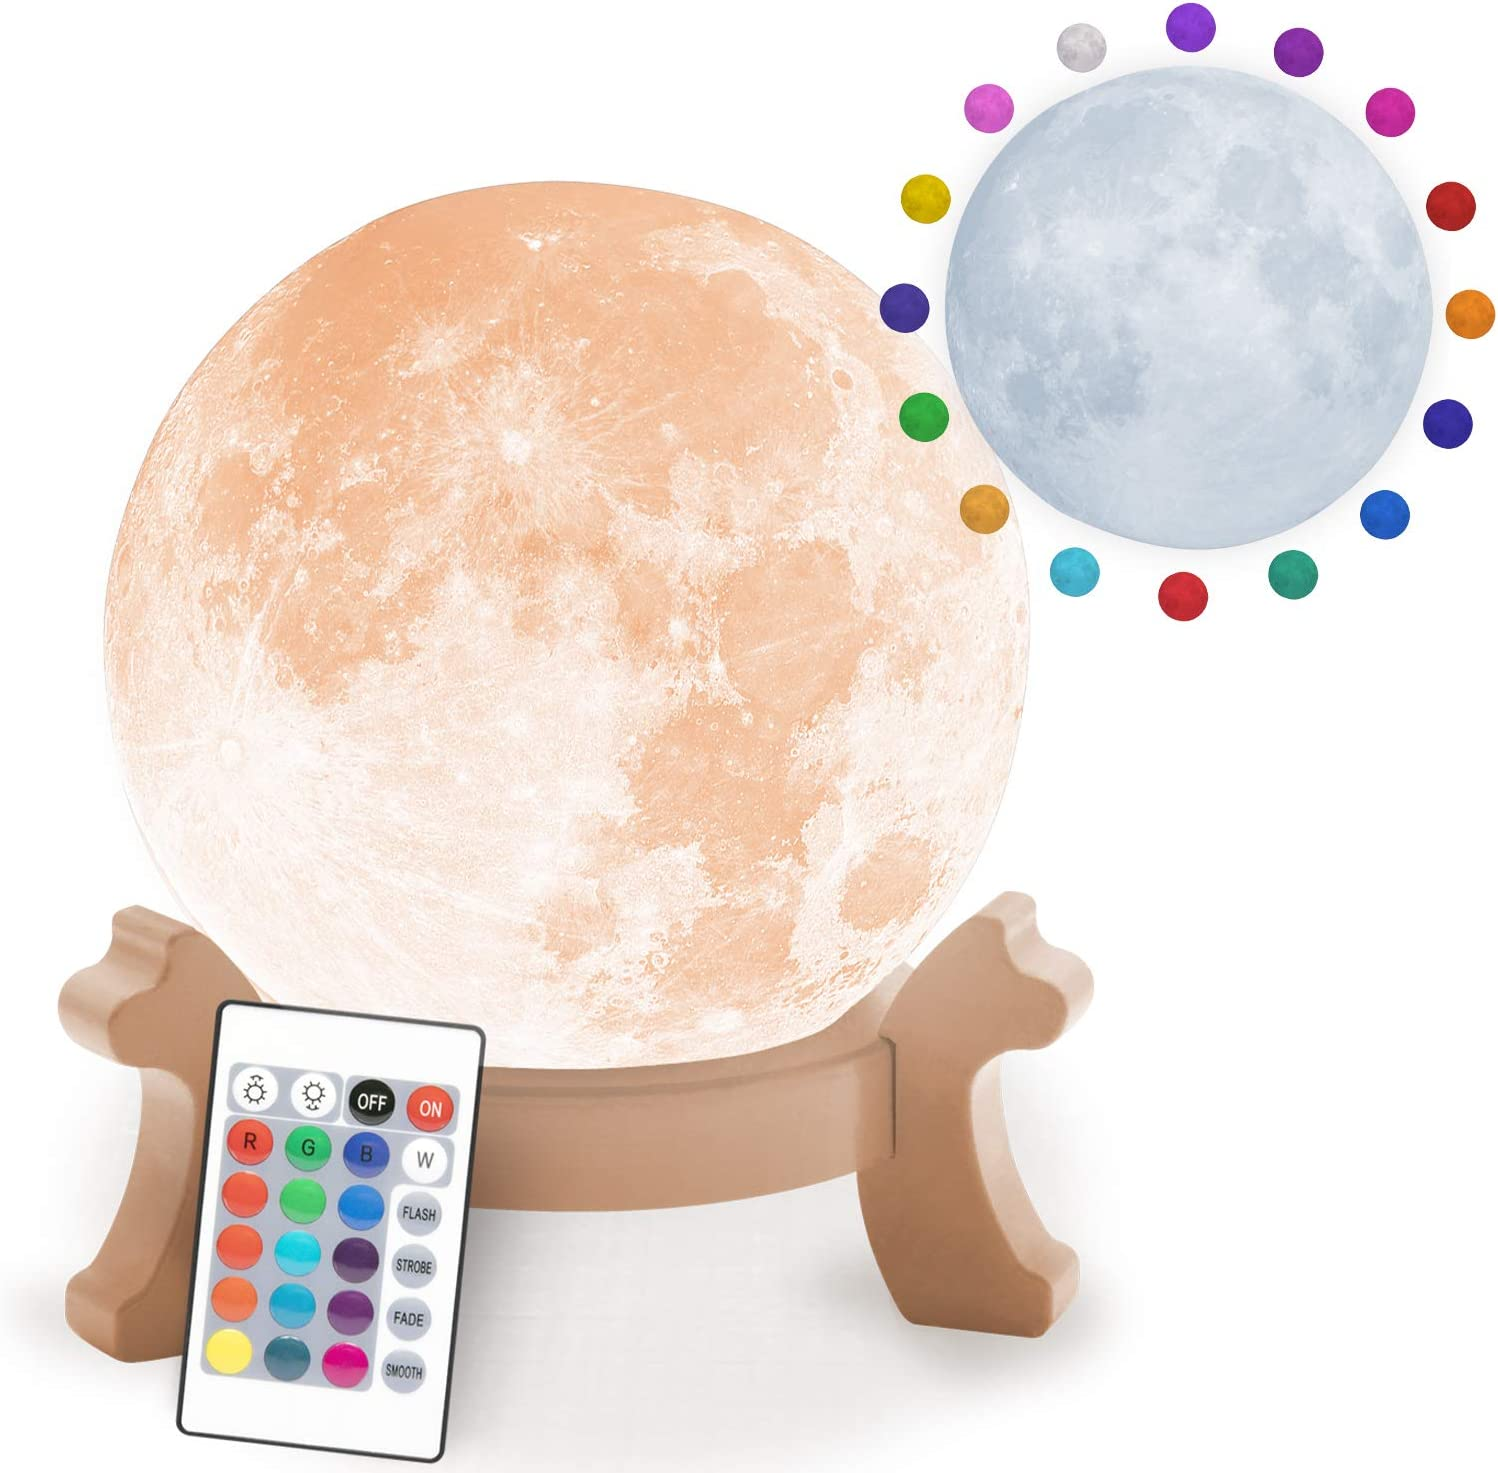 Full Moon Decorative & Realistic 3-D LED Moon Lamp Color Options & 16 Brightness Levels by BulbHead, 6.5 inch, Remote Control & Rechargeable Light